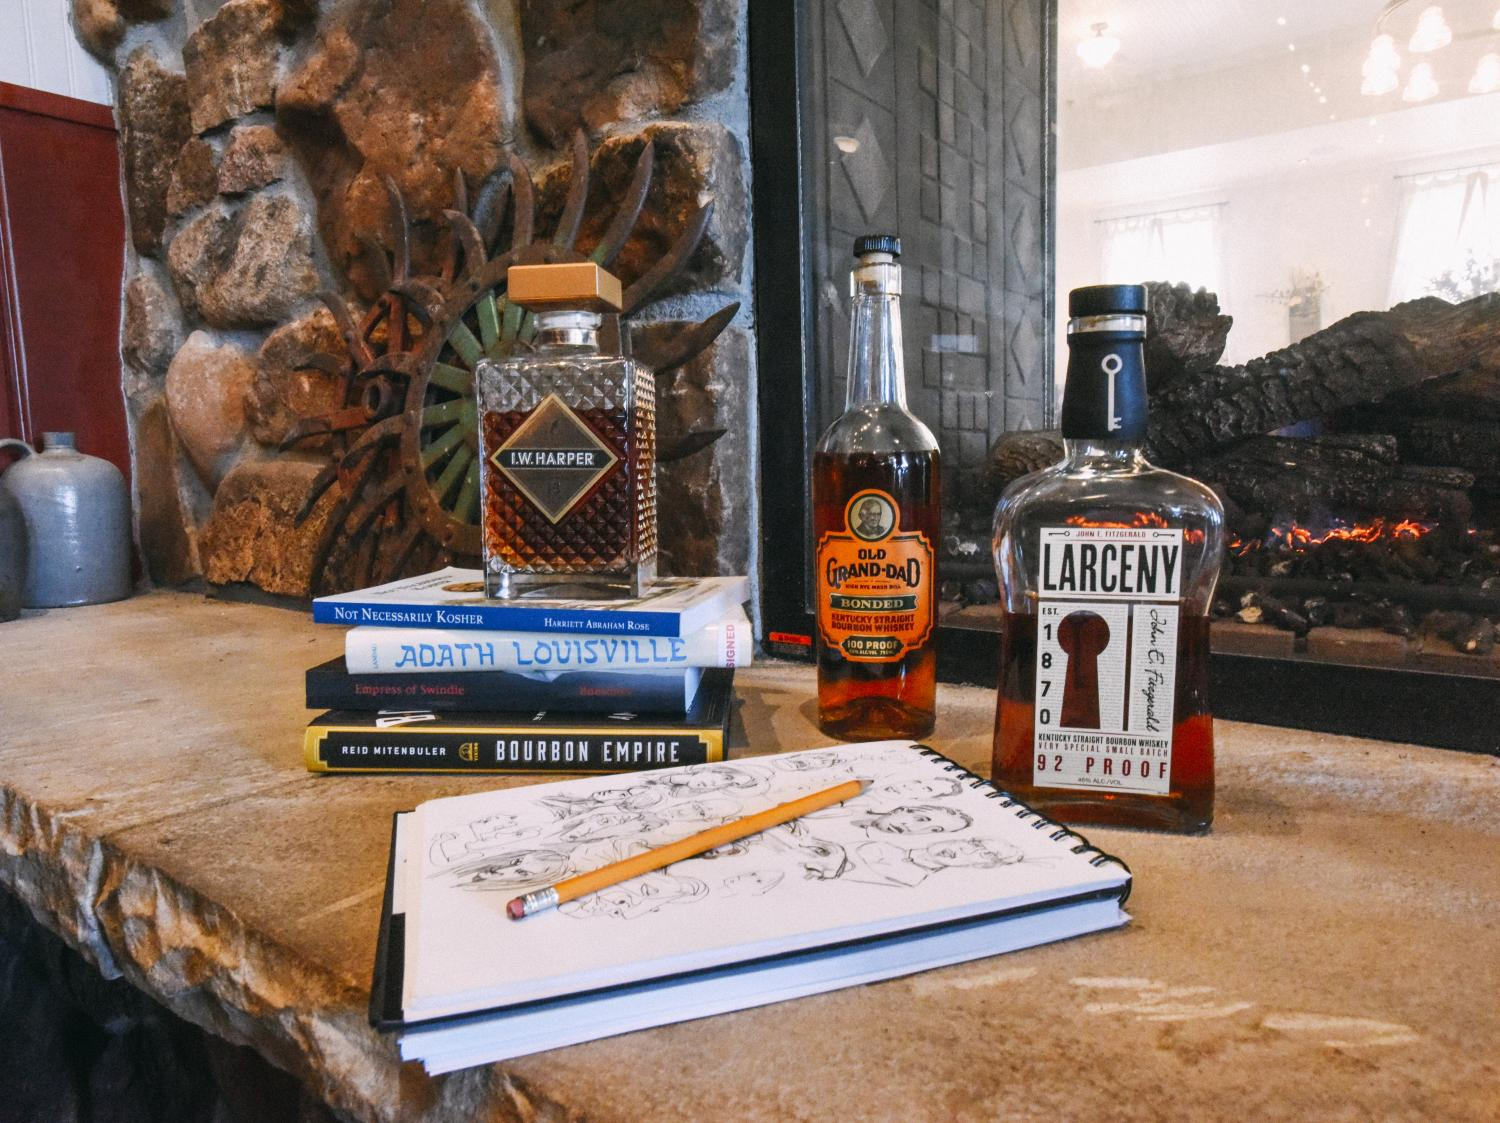 JT Waldman's sketch book surrounded by bottles of bourbon